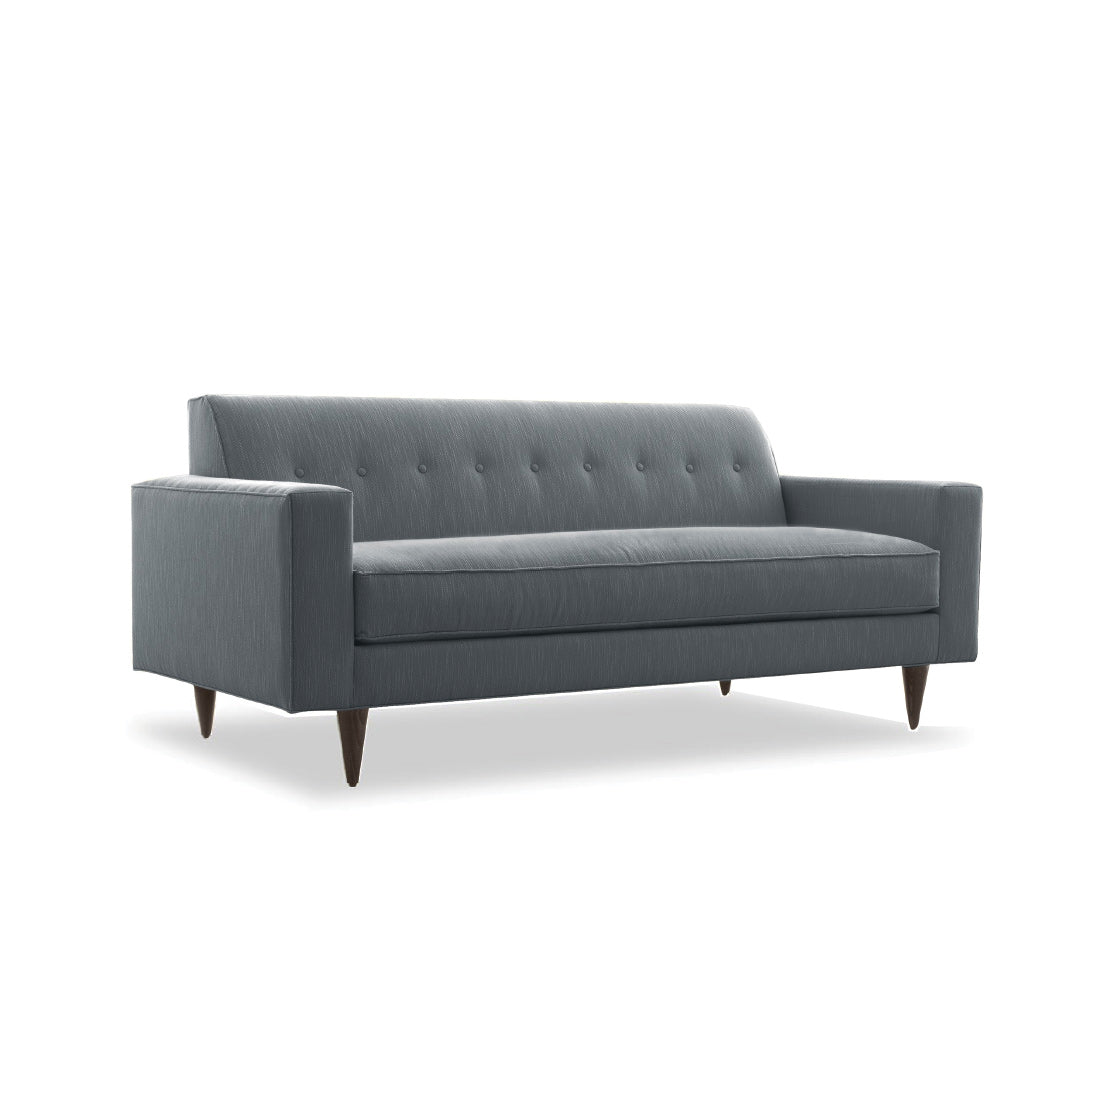 "Michael 88"" Sofa   Made-to-Order"